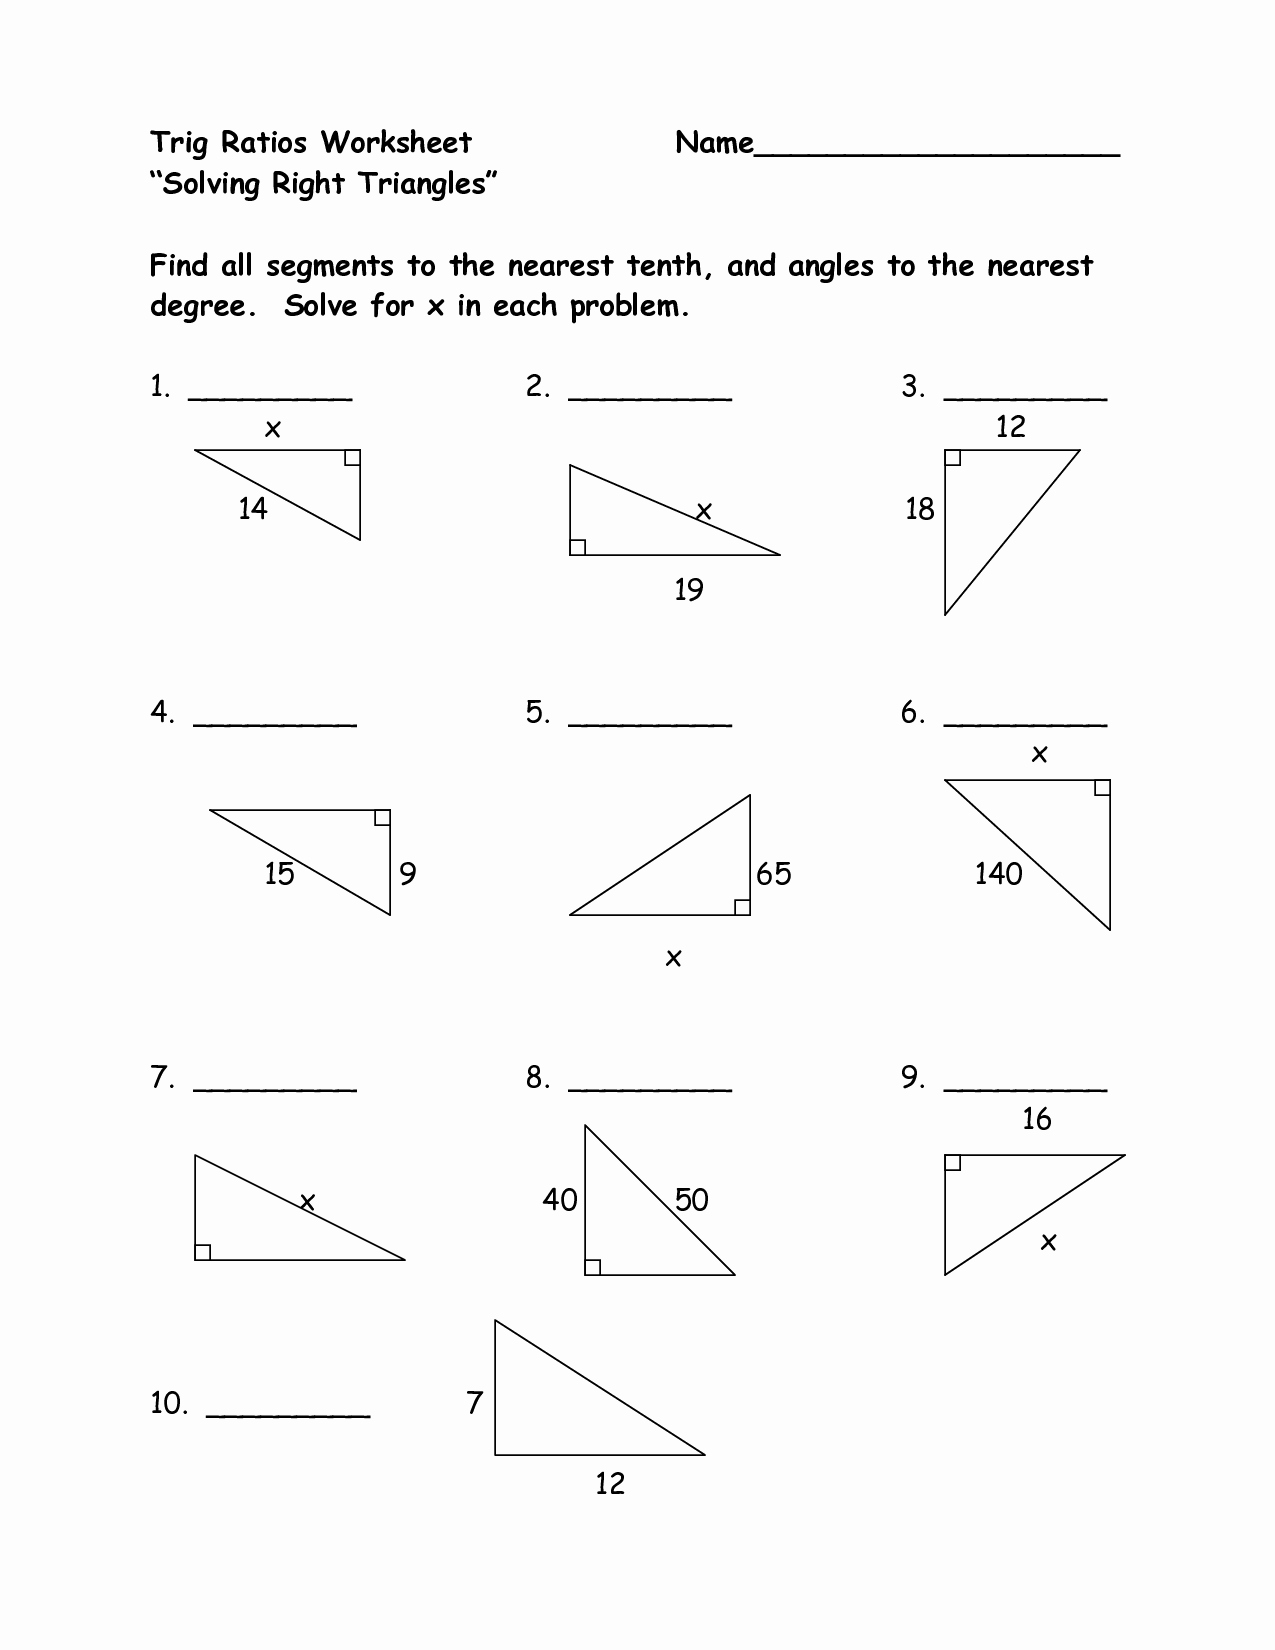 Right Triangle Trigonometry Worksheet Unique Trigonometry Ratios Worksheet Answers